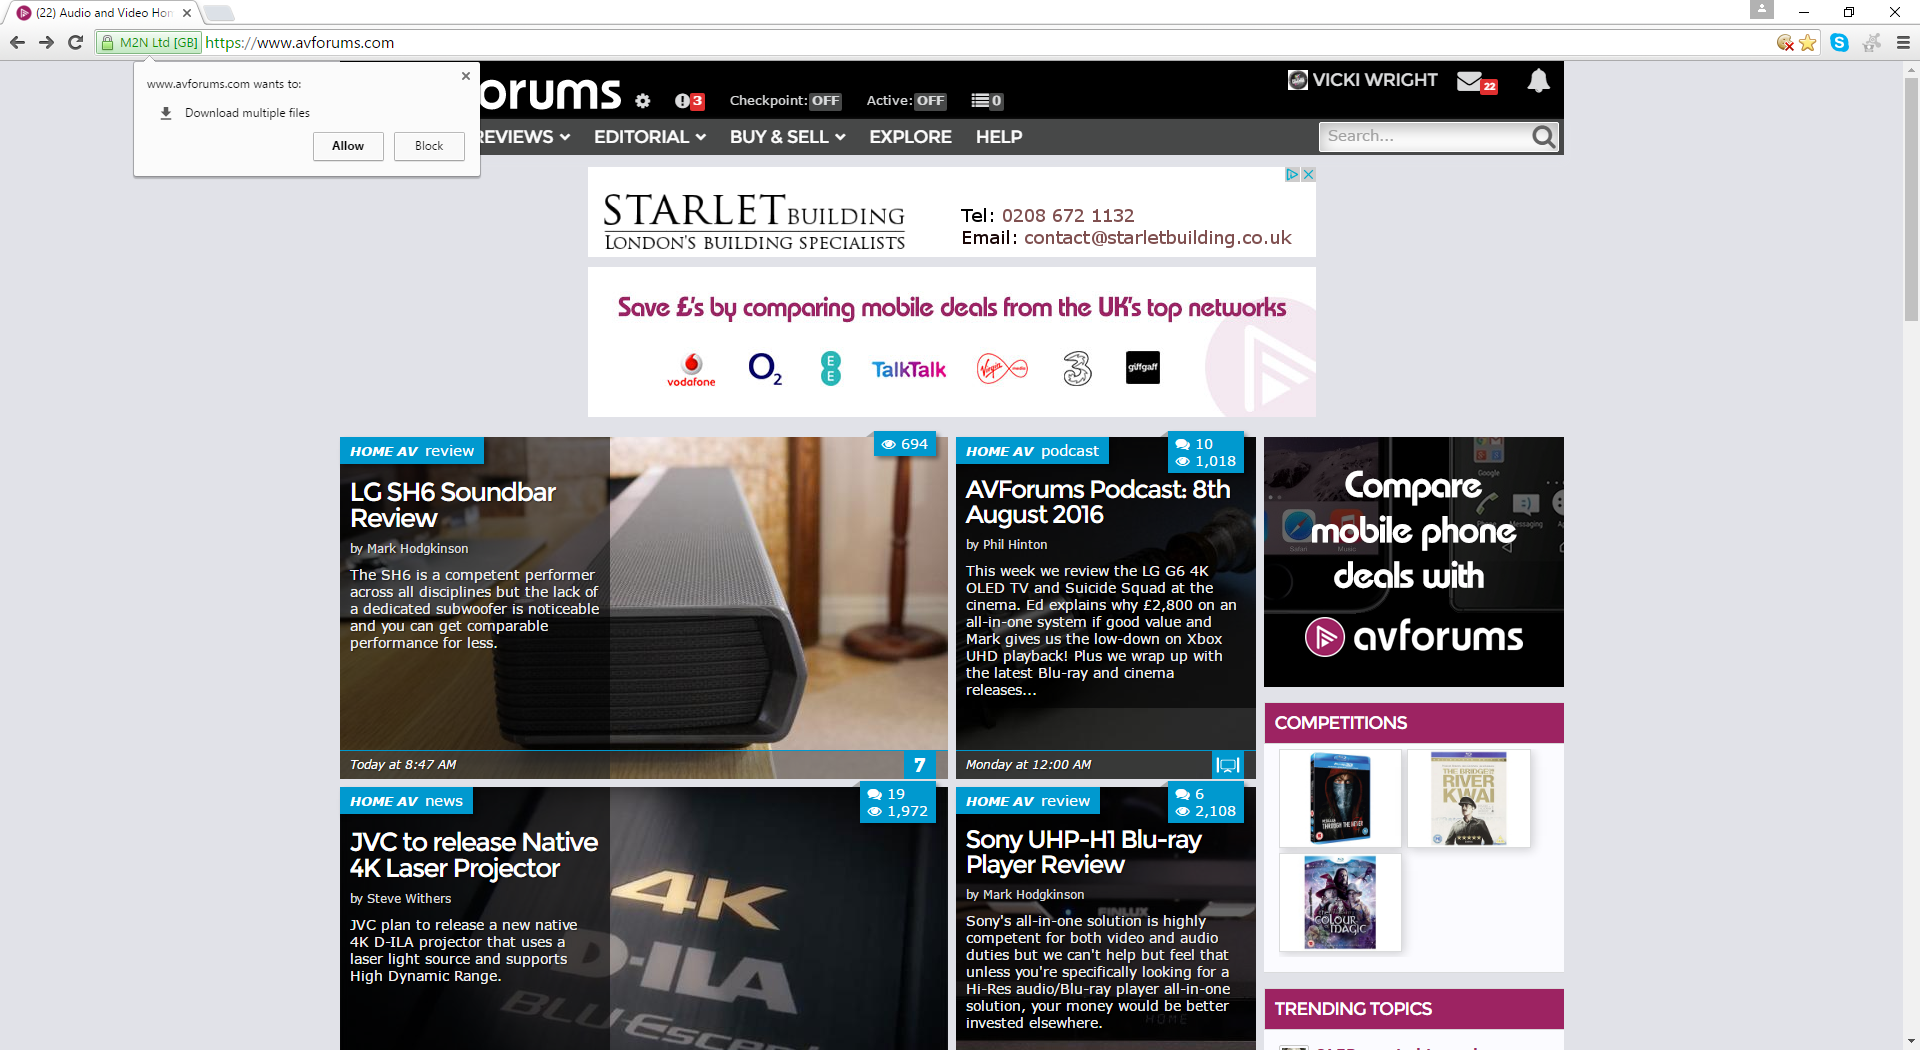 Starlet Building google advert prompts to download